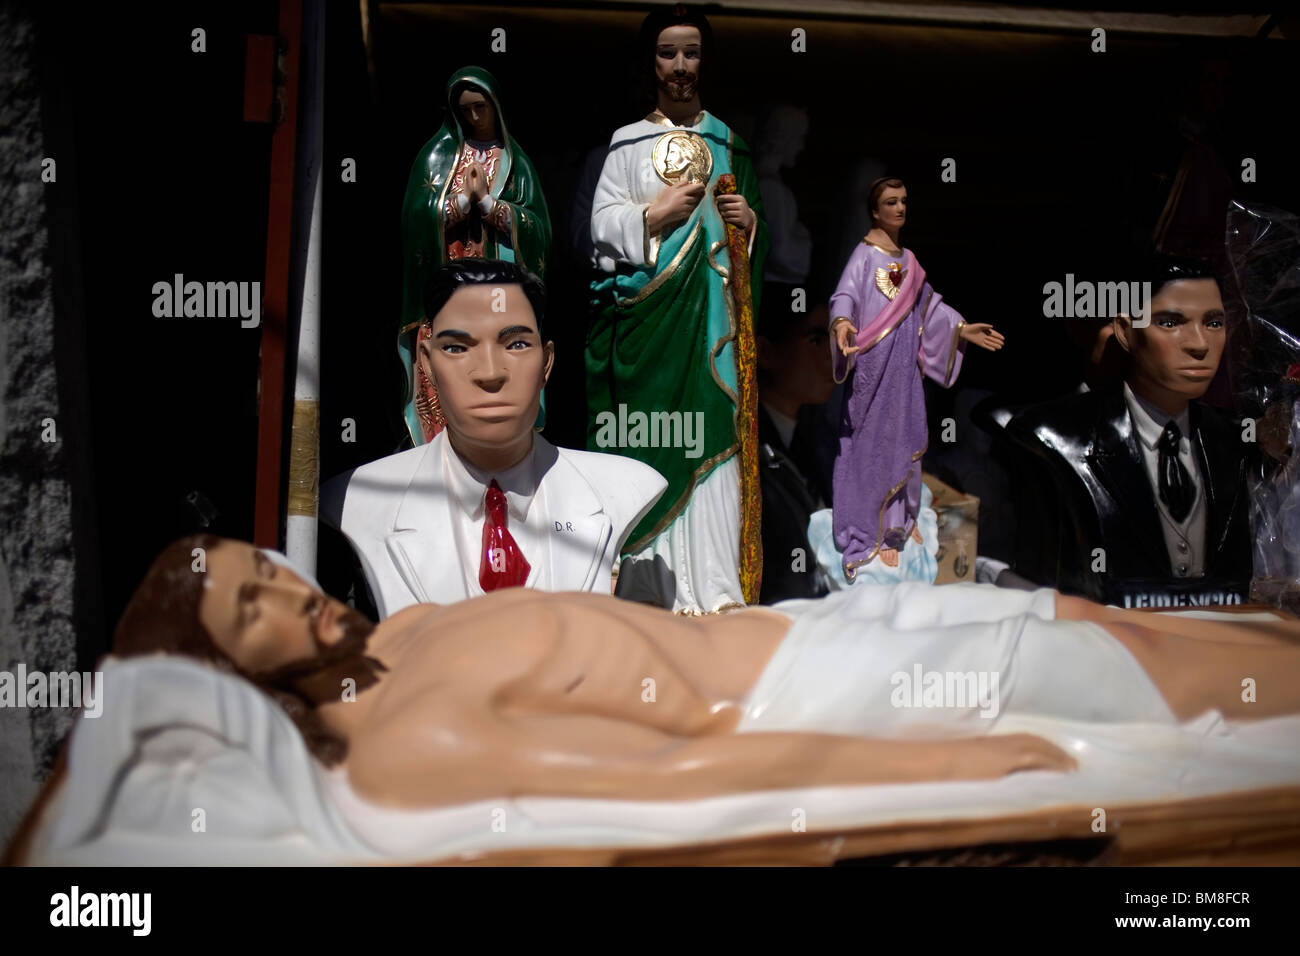 Catholic iconography and Nino Fidencio sculptures sit for sale in a shop during Nino Fidencio celebrations in Espinazo, - Stock Image